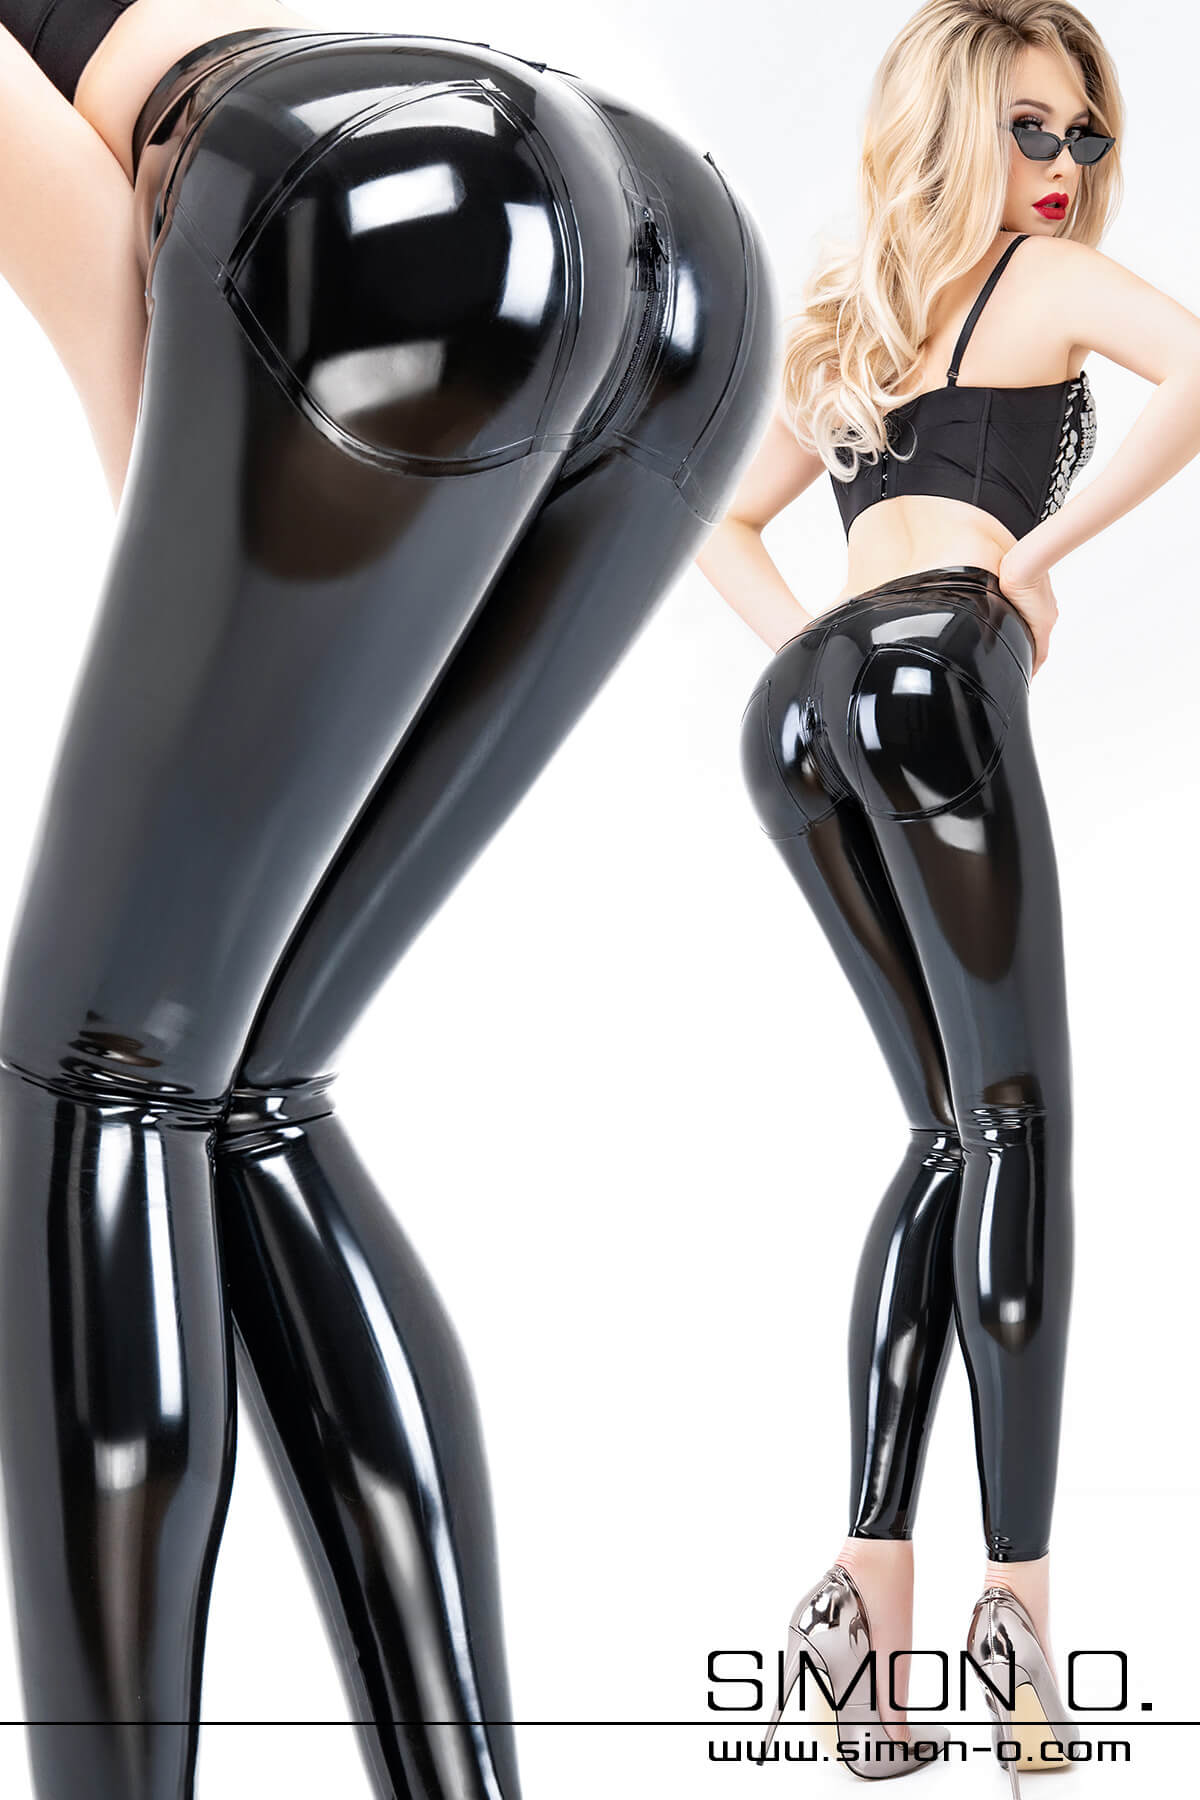 Blonde woman with a skin tight shiny black latex trousers special push up effect in the seat area